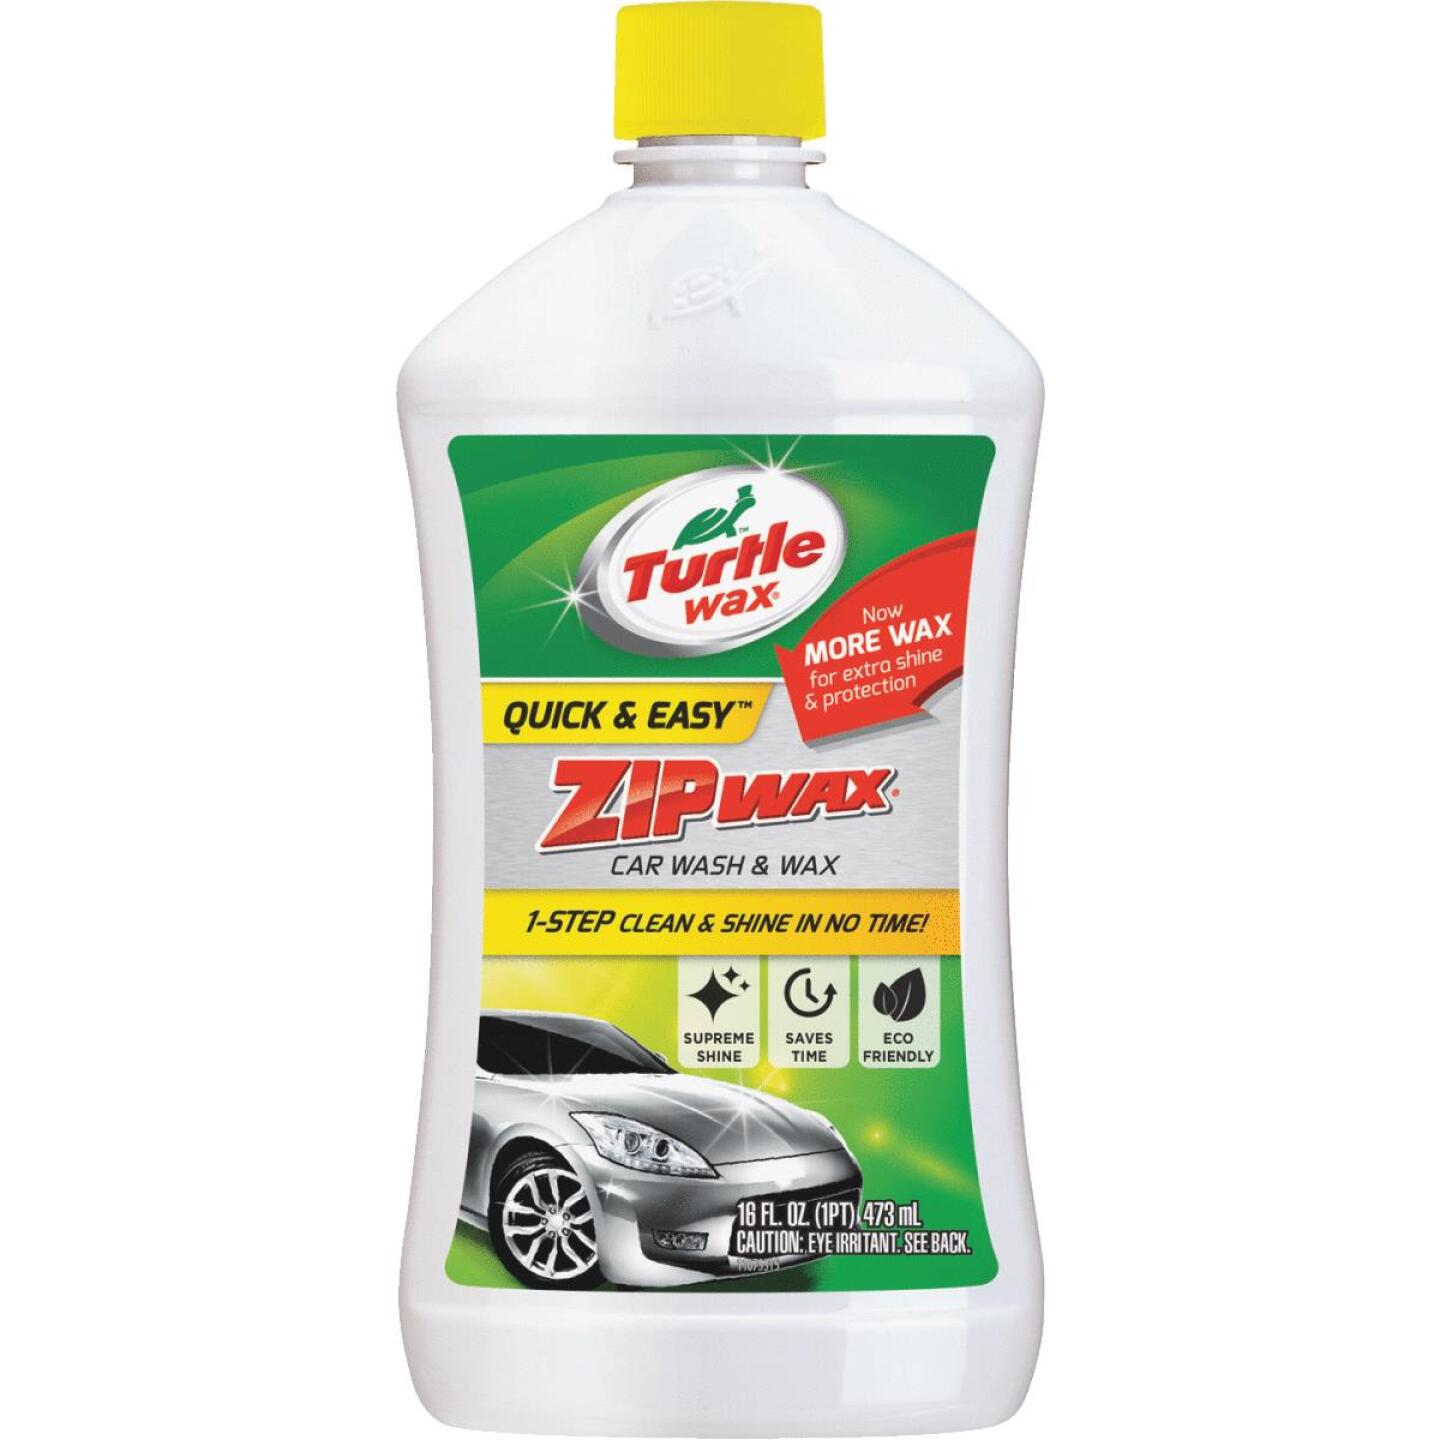 Turtle Wax Zip Wax Liquid 16 oz Car Wash Image 1